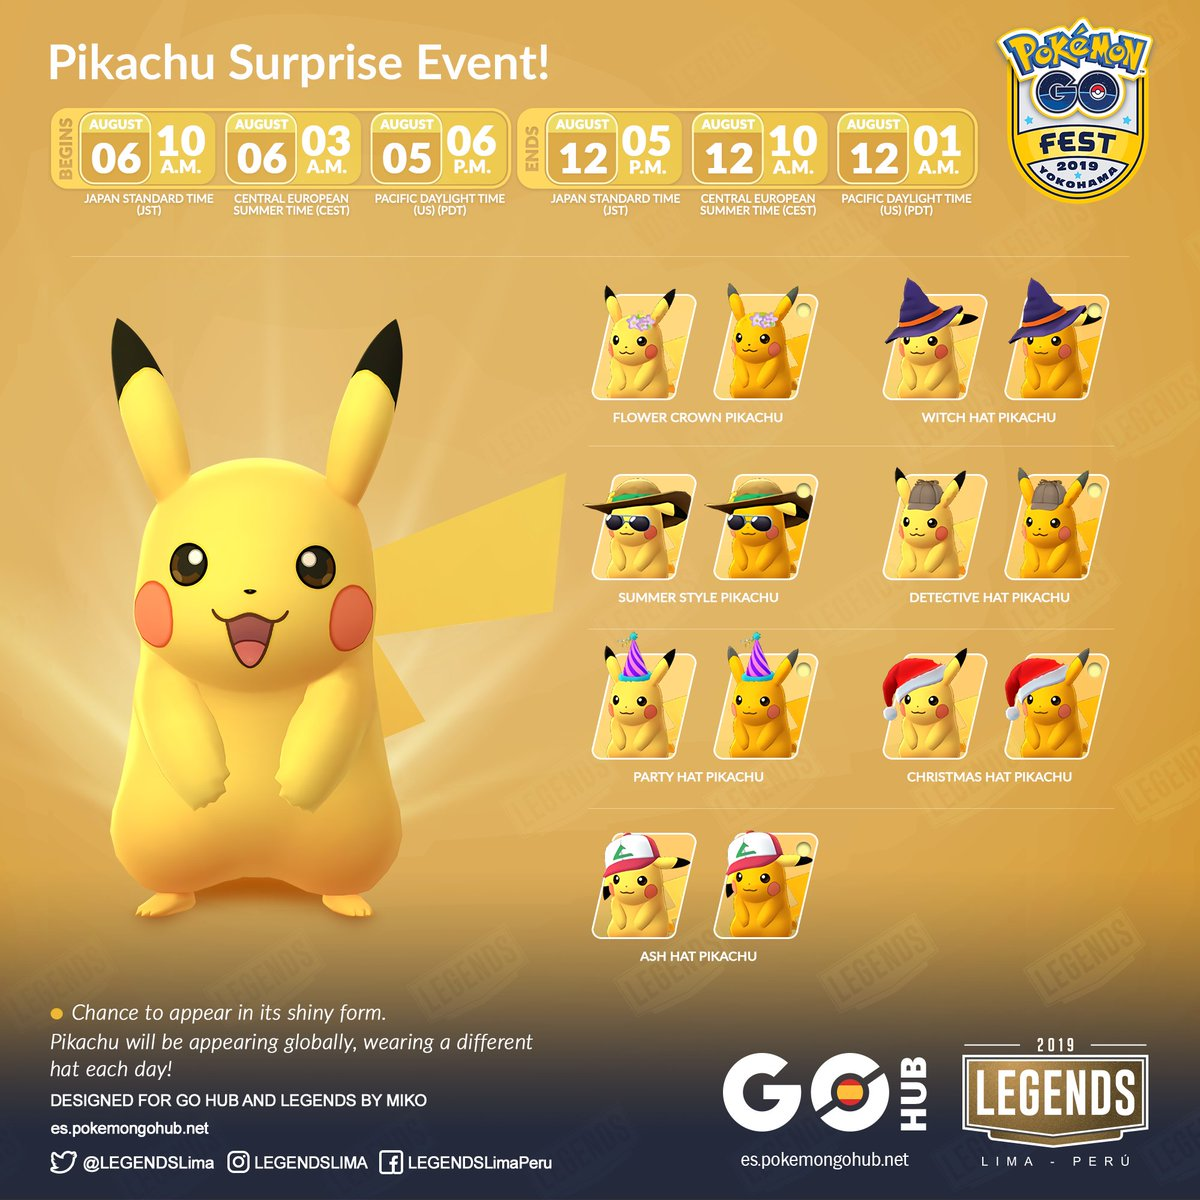 Legends On Twitter Pikachu Surprise Event From August 6 At 10 A M Jst To August 12 At 5 P M Jst Pikachu Will Be Appearing Globally Wearing A Different Hat